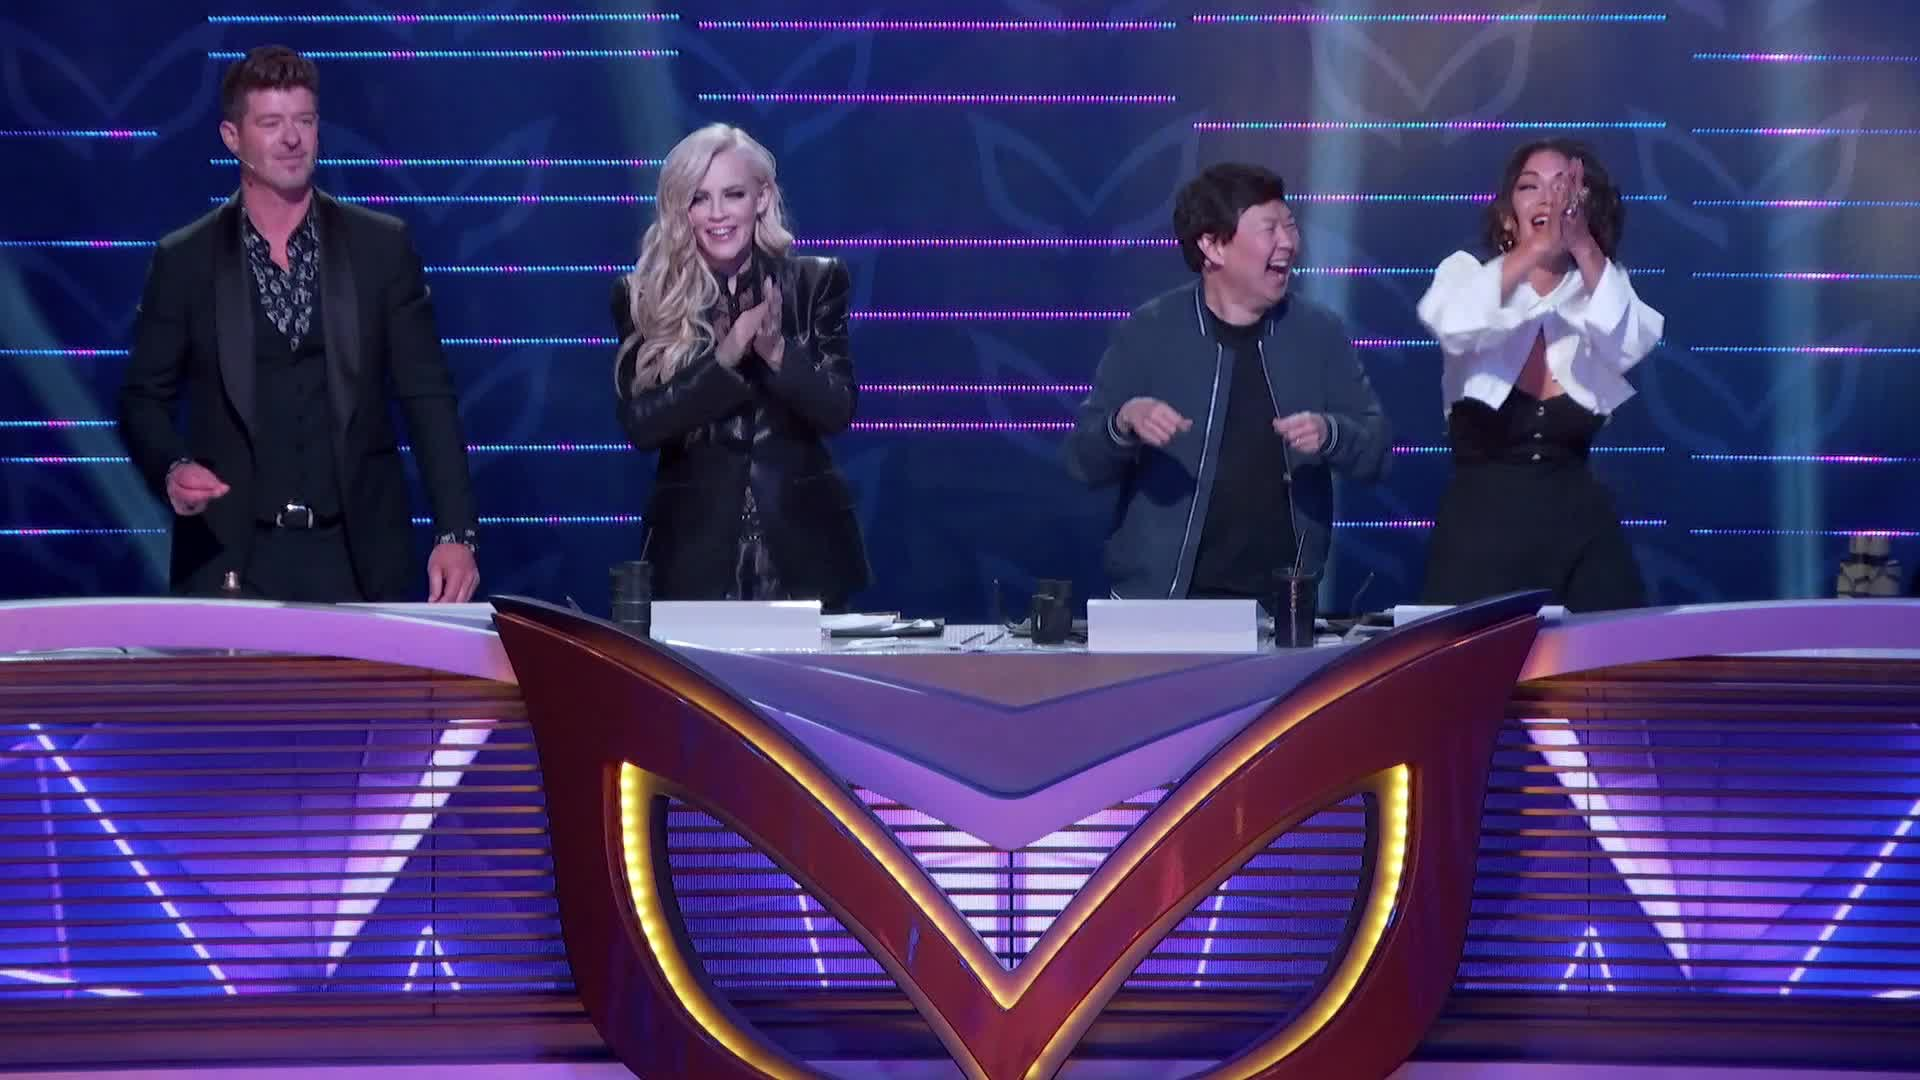 applause, celebrate, clapping, dance, dancing, excited, happy, jenny mccarthy, ken jeong, laughing, masked singer, nicole scherzinger, robin thicke, slow clap, the masked singer, the masked singer on fox, yay, Panelists Laughing GIFs